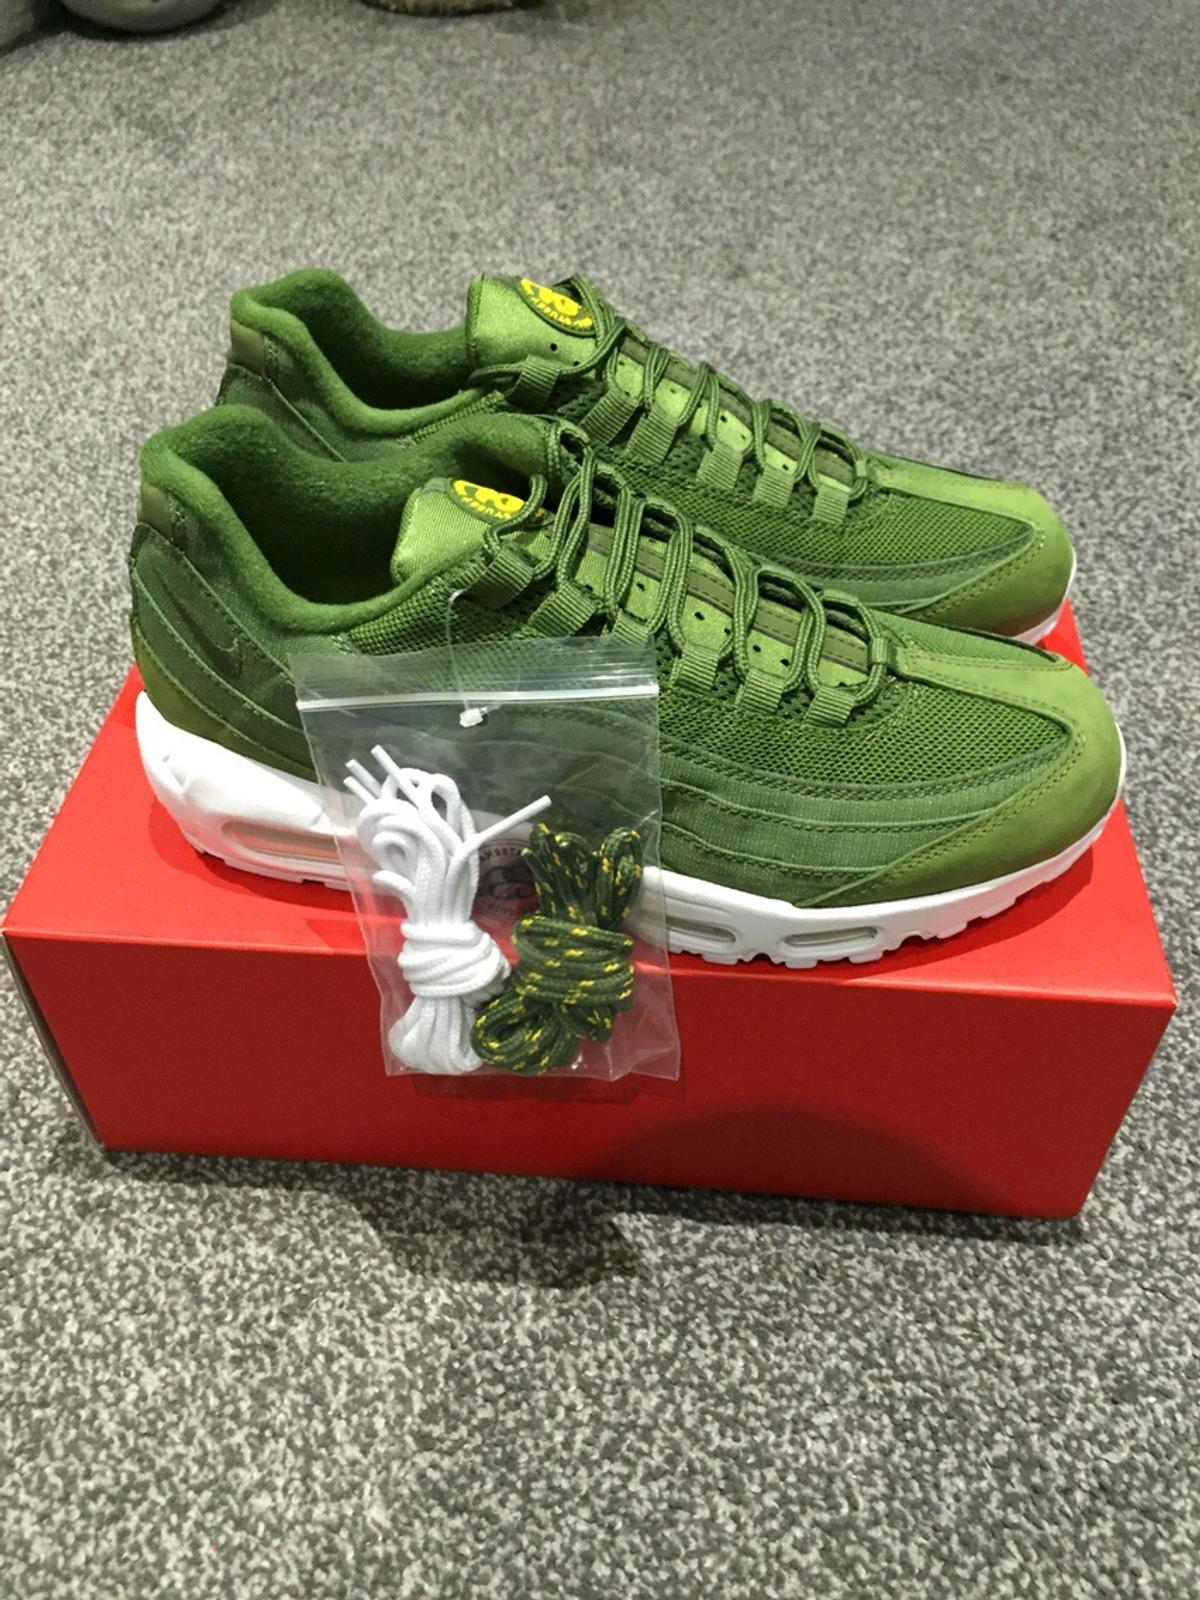 meet ced4b 15491 Stussy x Nike Air Max 95 Olive Green in RM11 London for ...